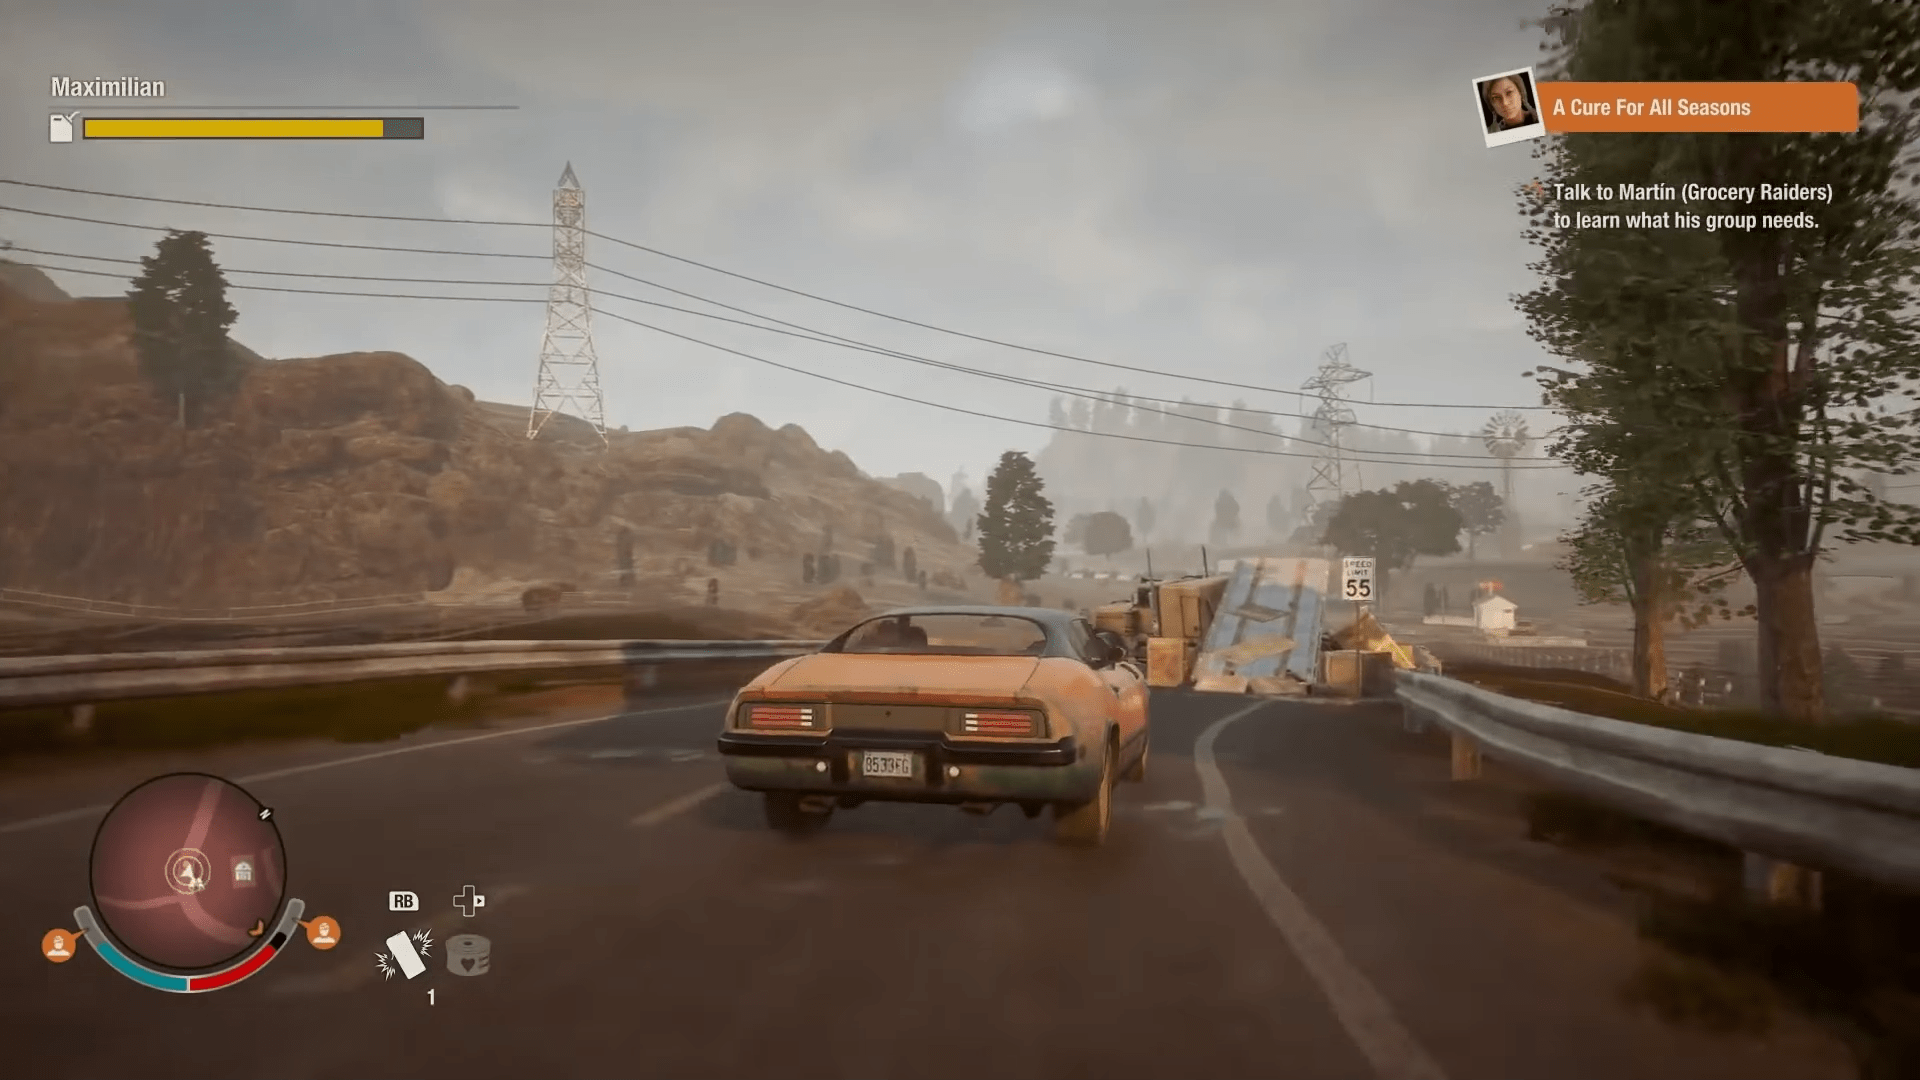 It Seems State Of Decay 3 Is Likely In The Cards For Undead Labs Based On Recent Job Posting